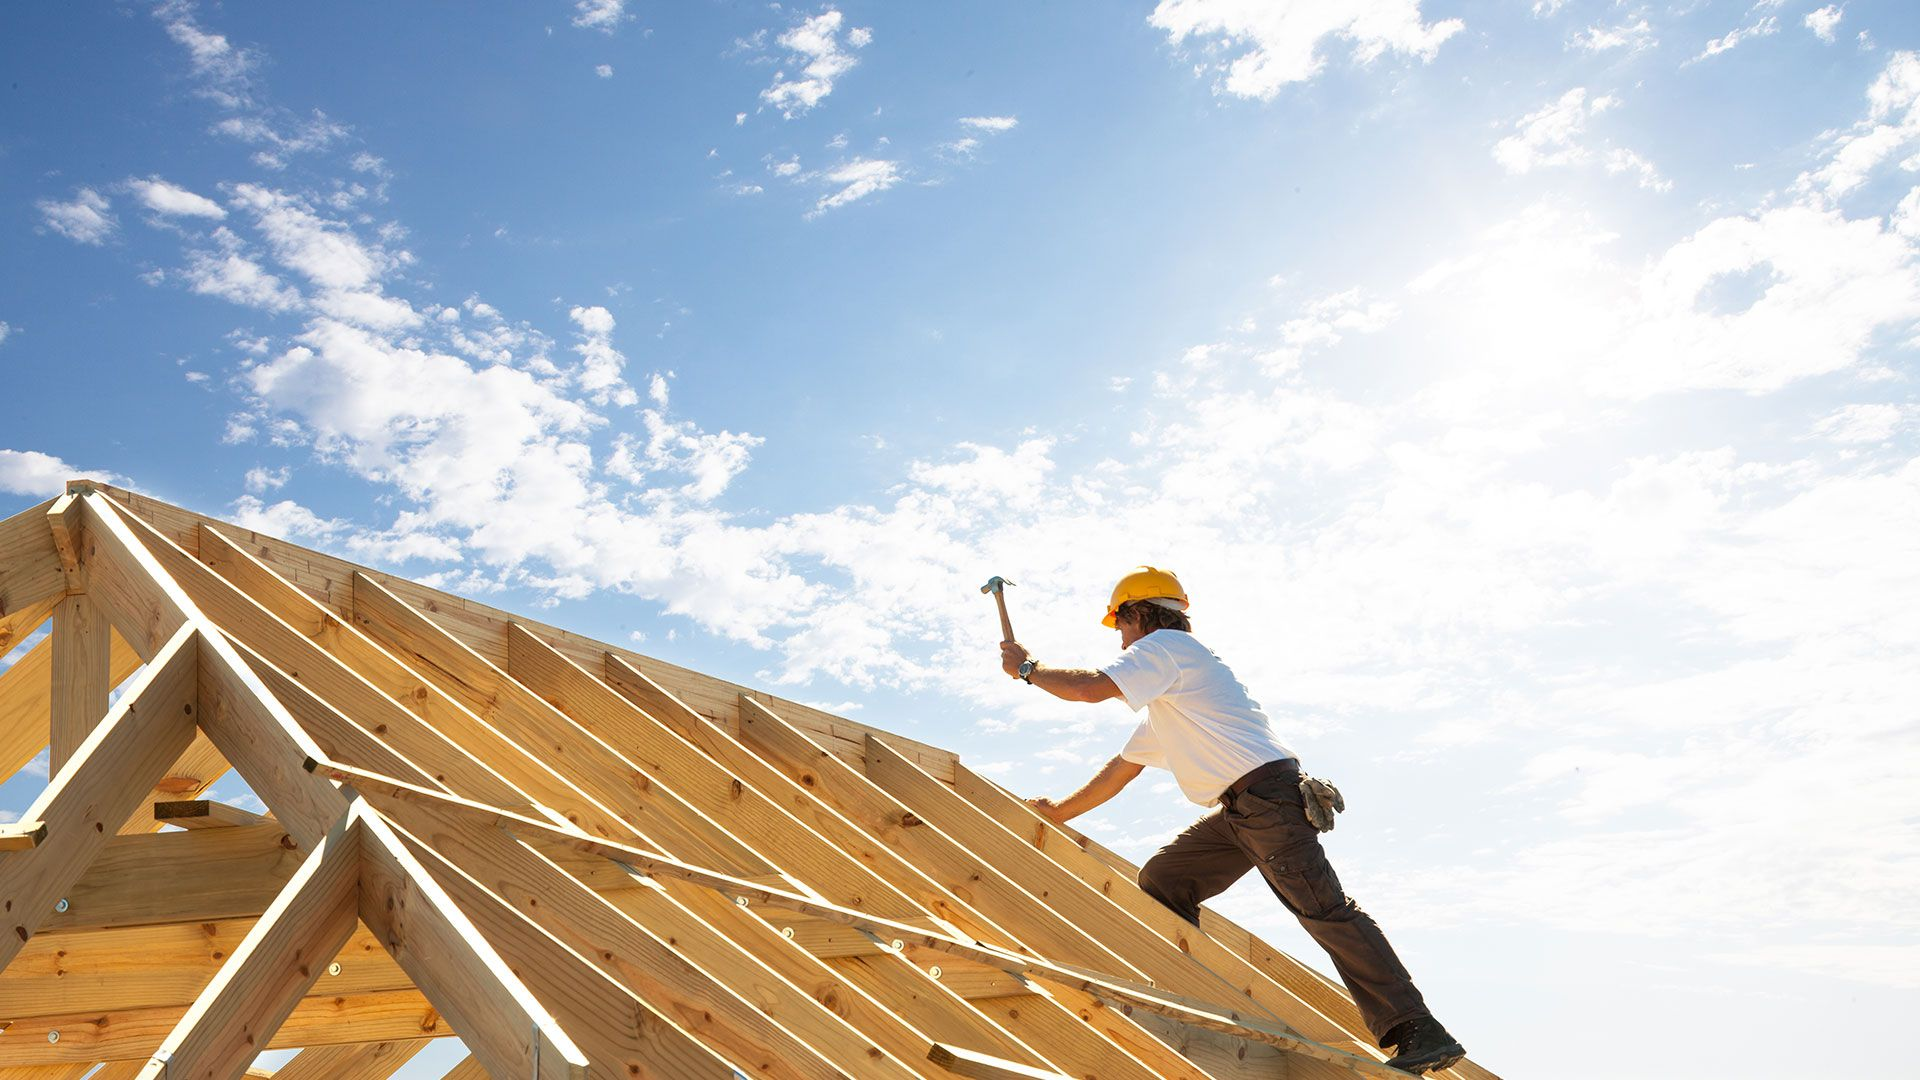 Roofing Repair Company In Lauderhill Fl Roof Repair Roofing Roofing Contractors